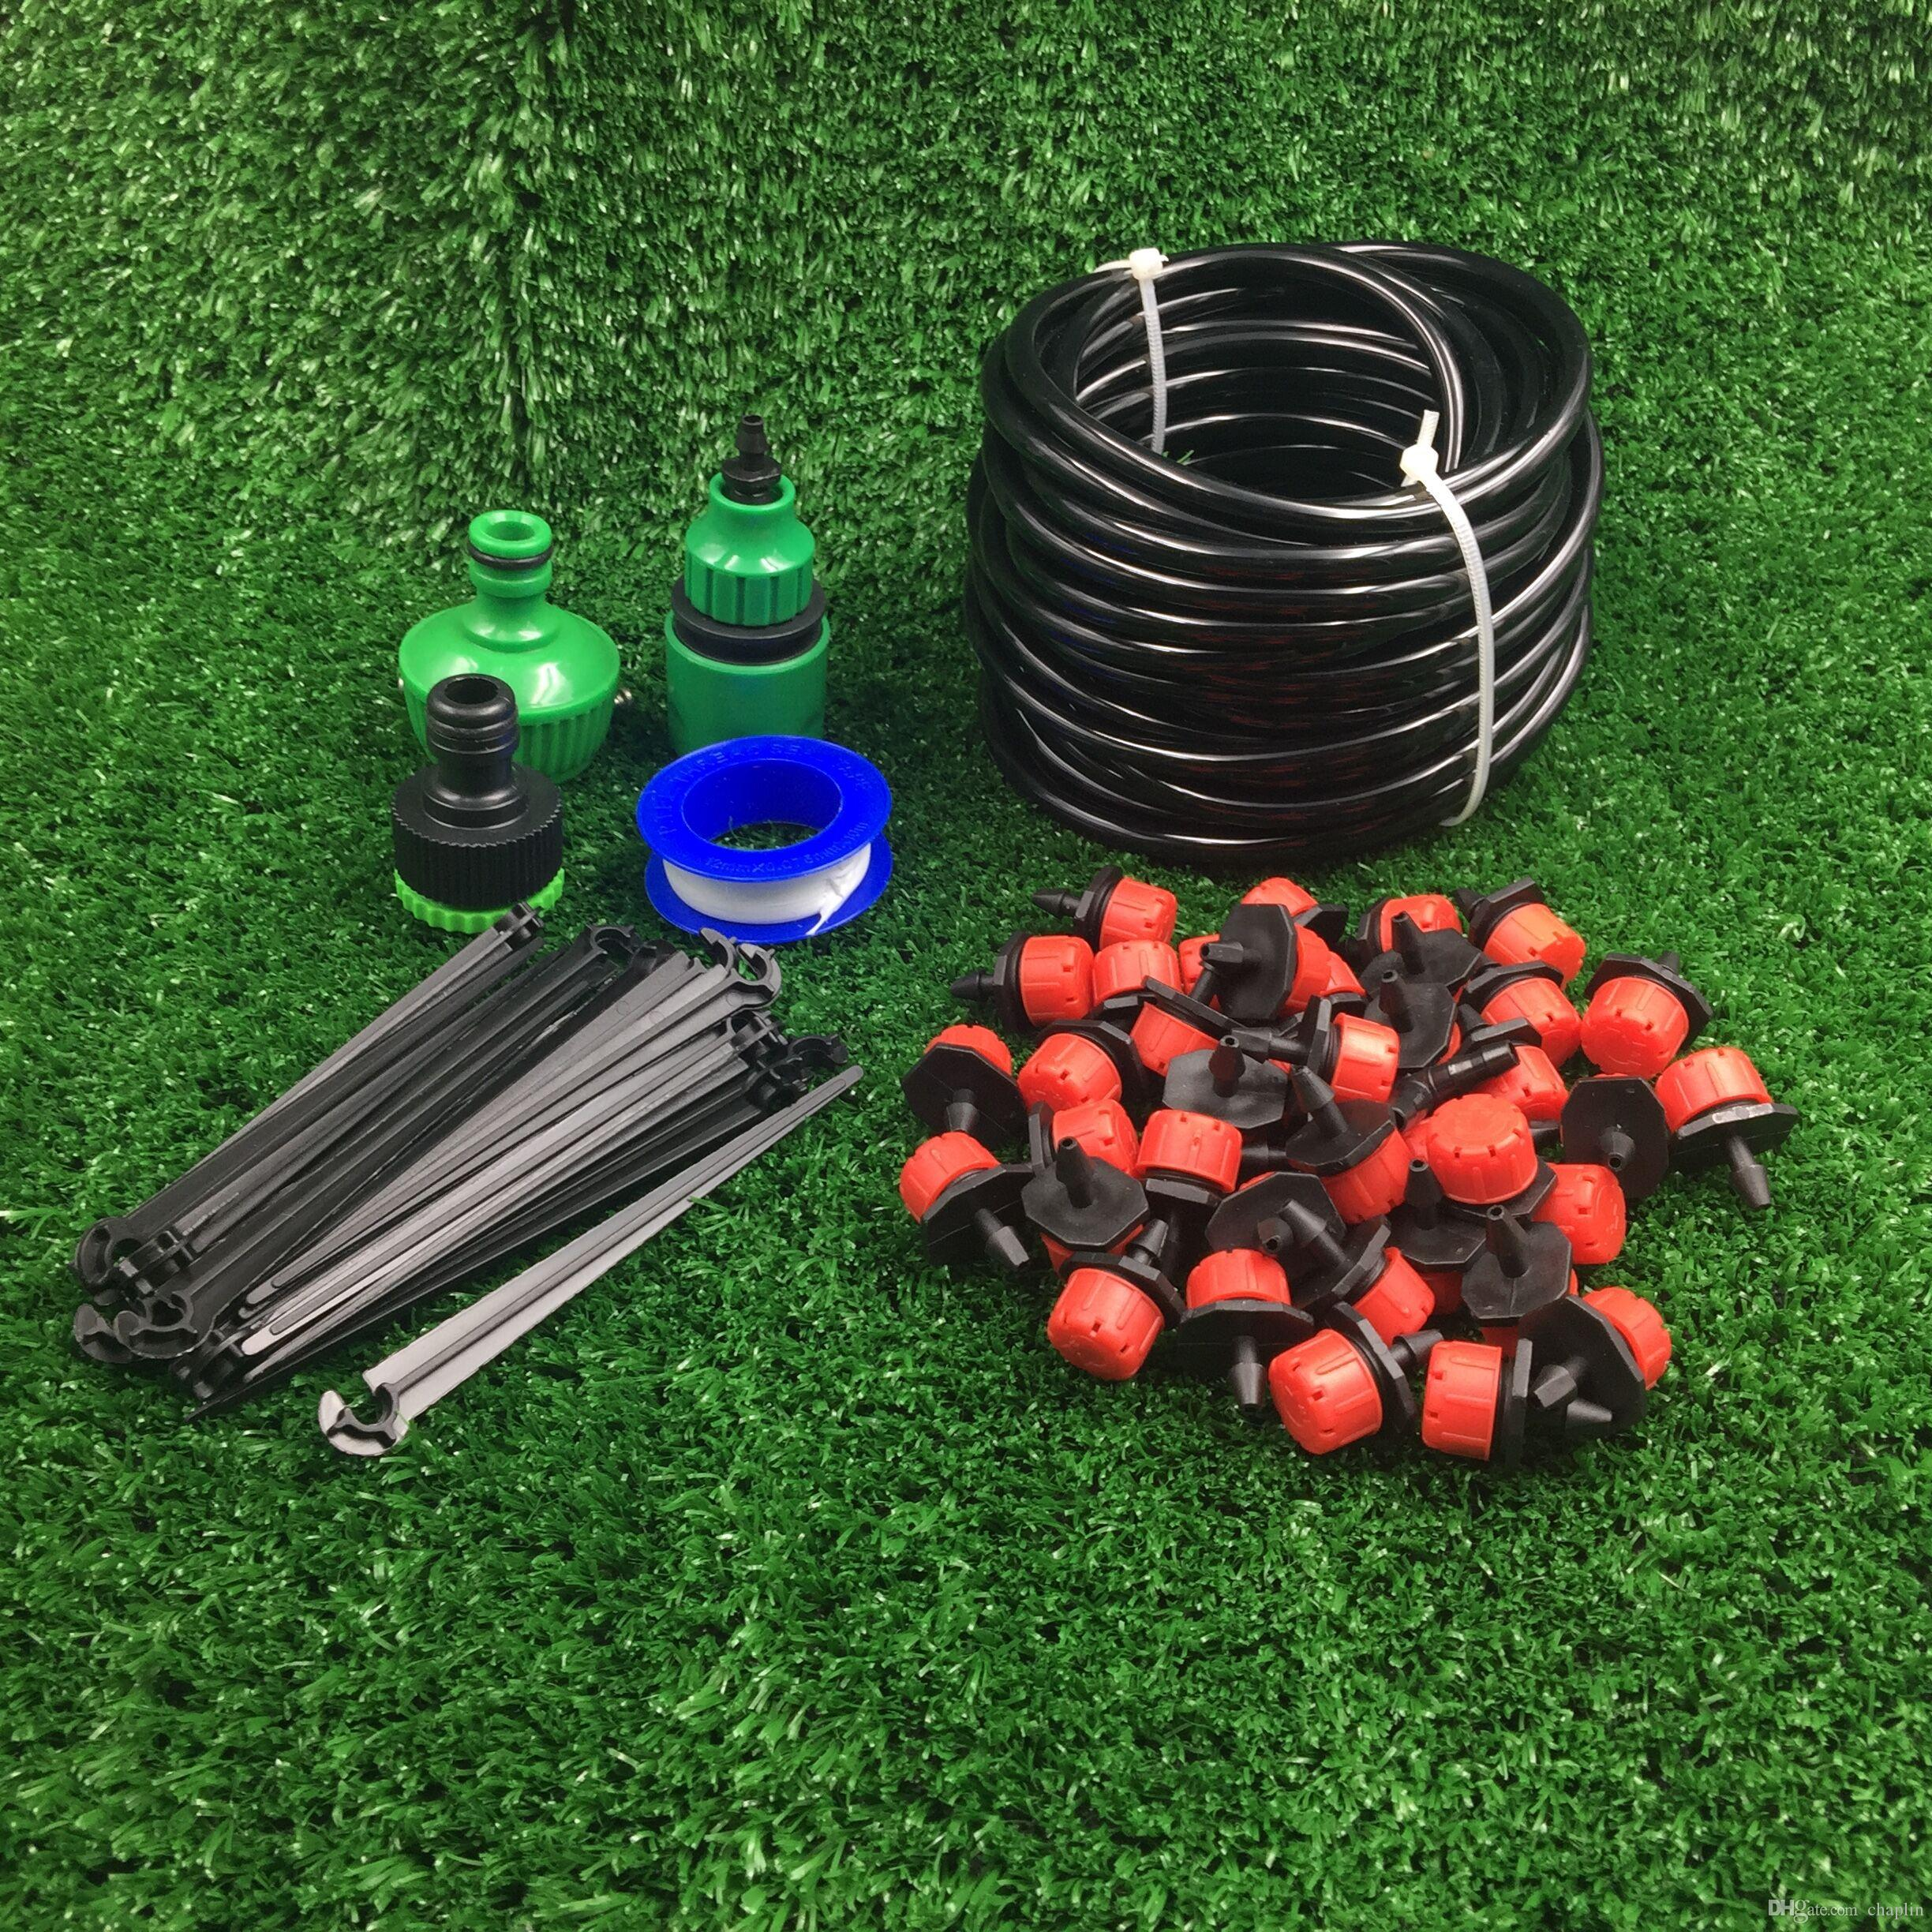 Pvc 4 7 hose hot sale diy automatic micro drip irrigation system gardening drip irrigation - Diy drip irrigation systems ...